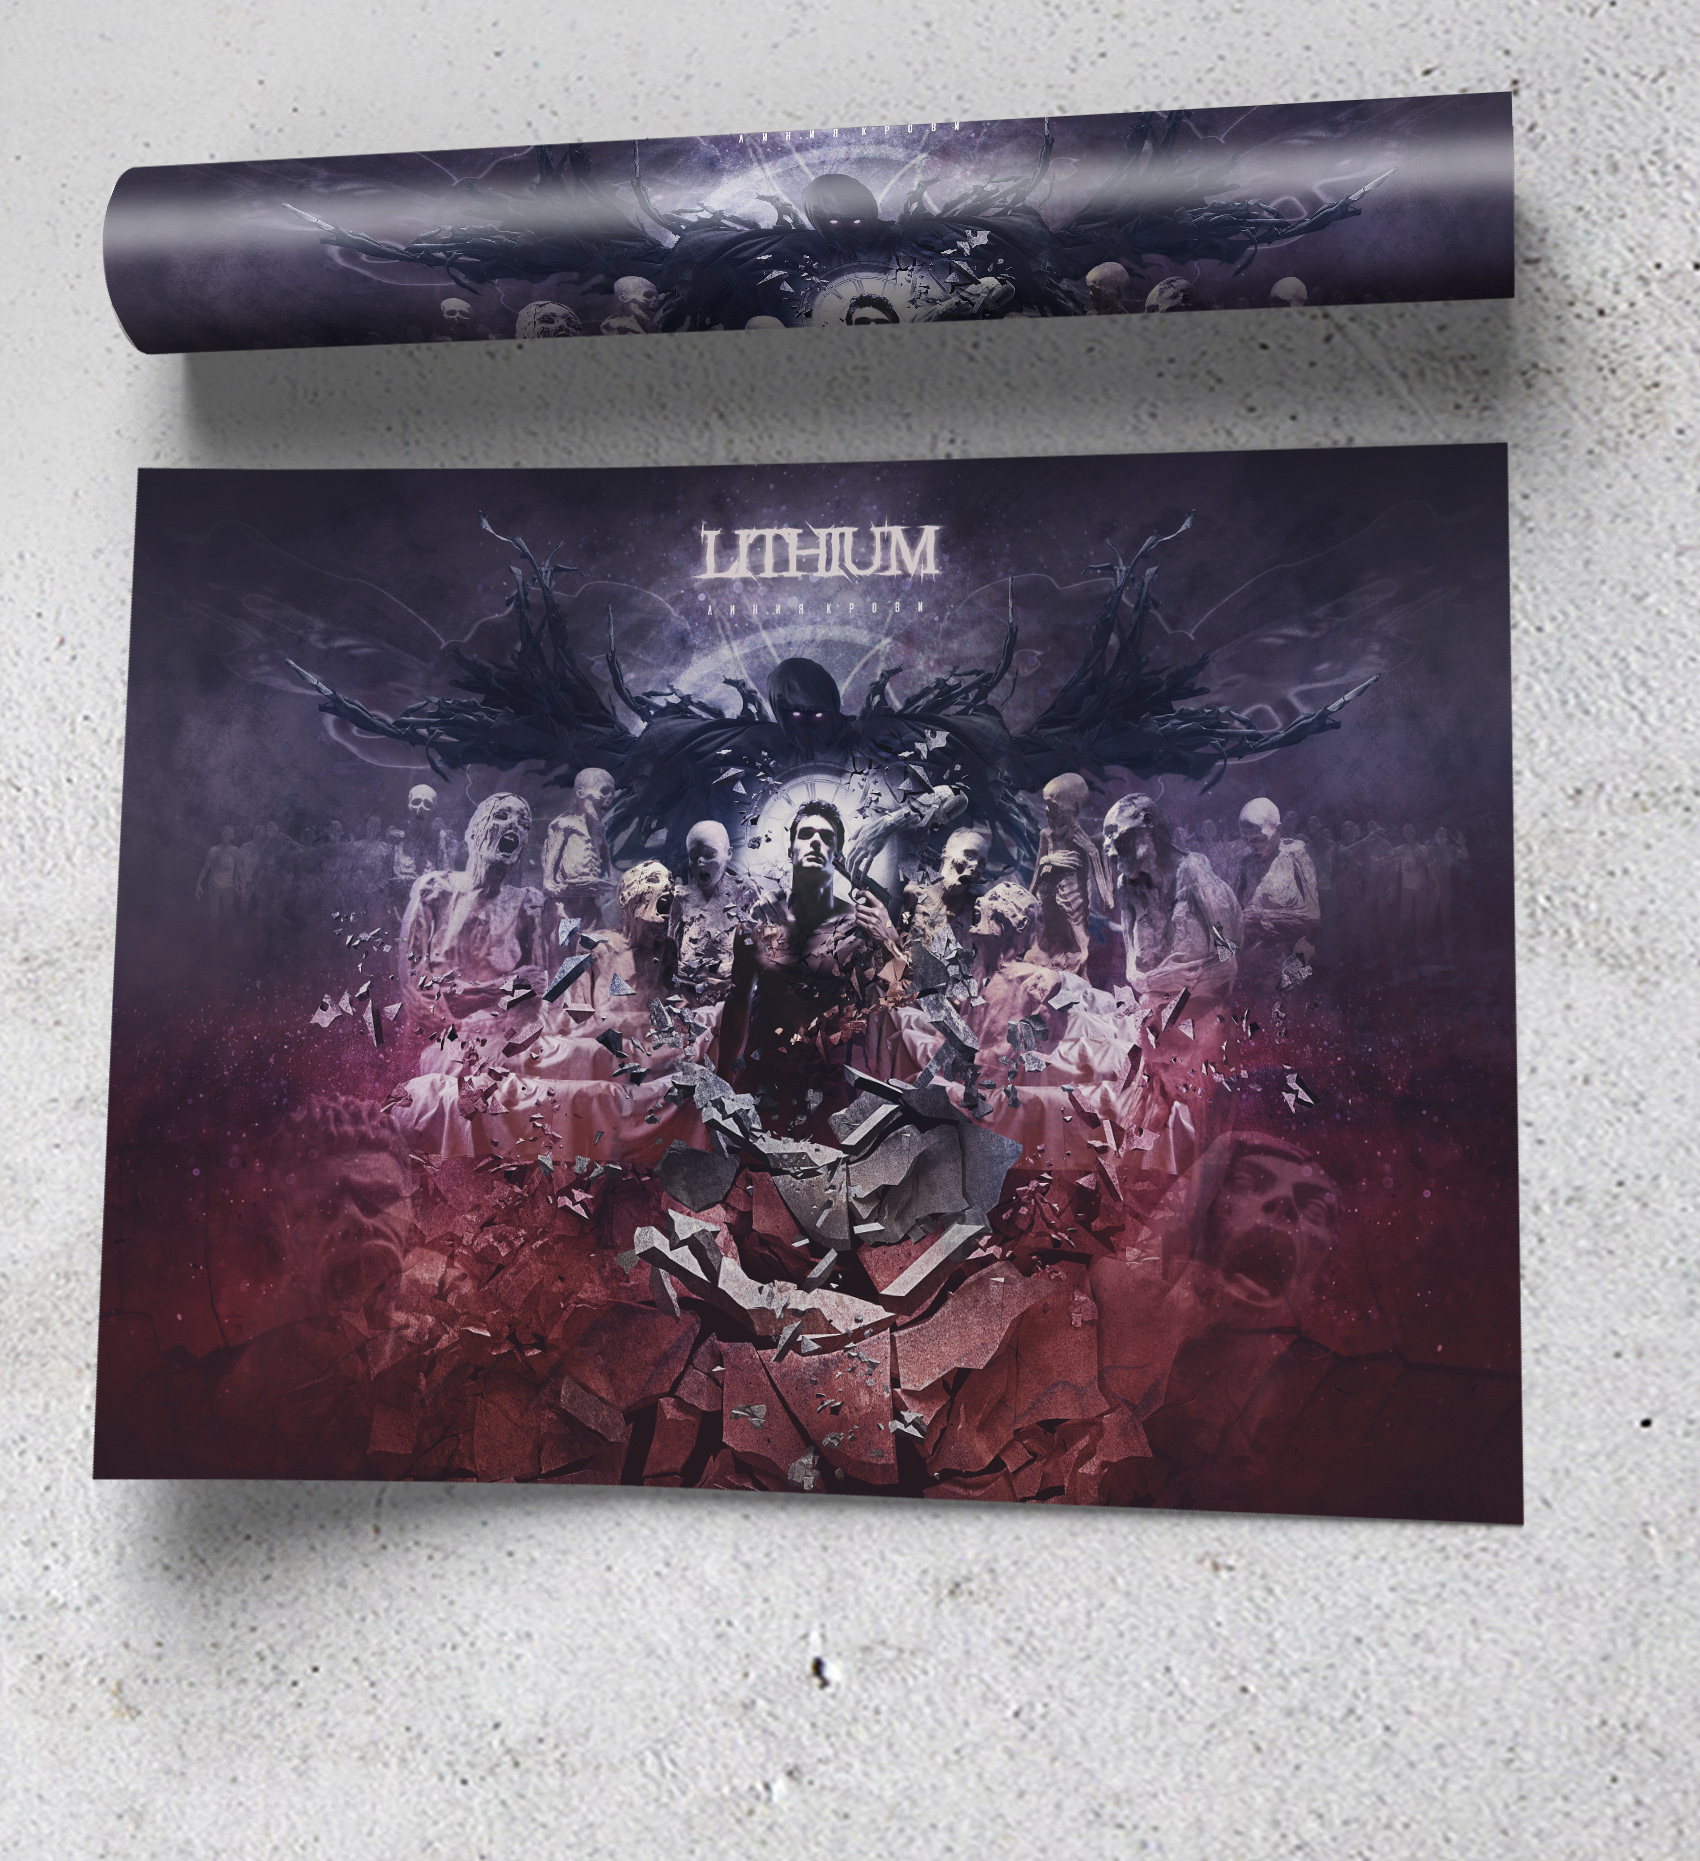 LITHIUM_poster_preview